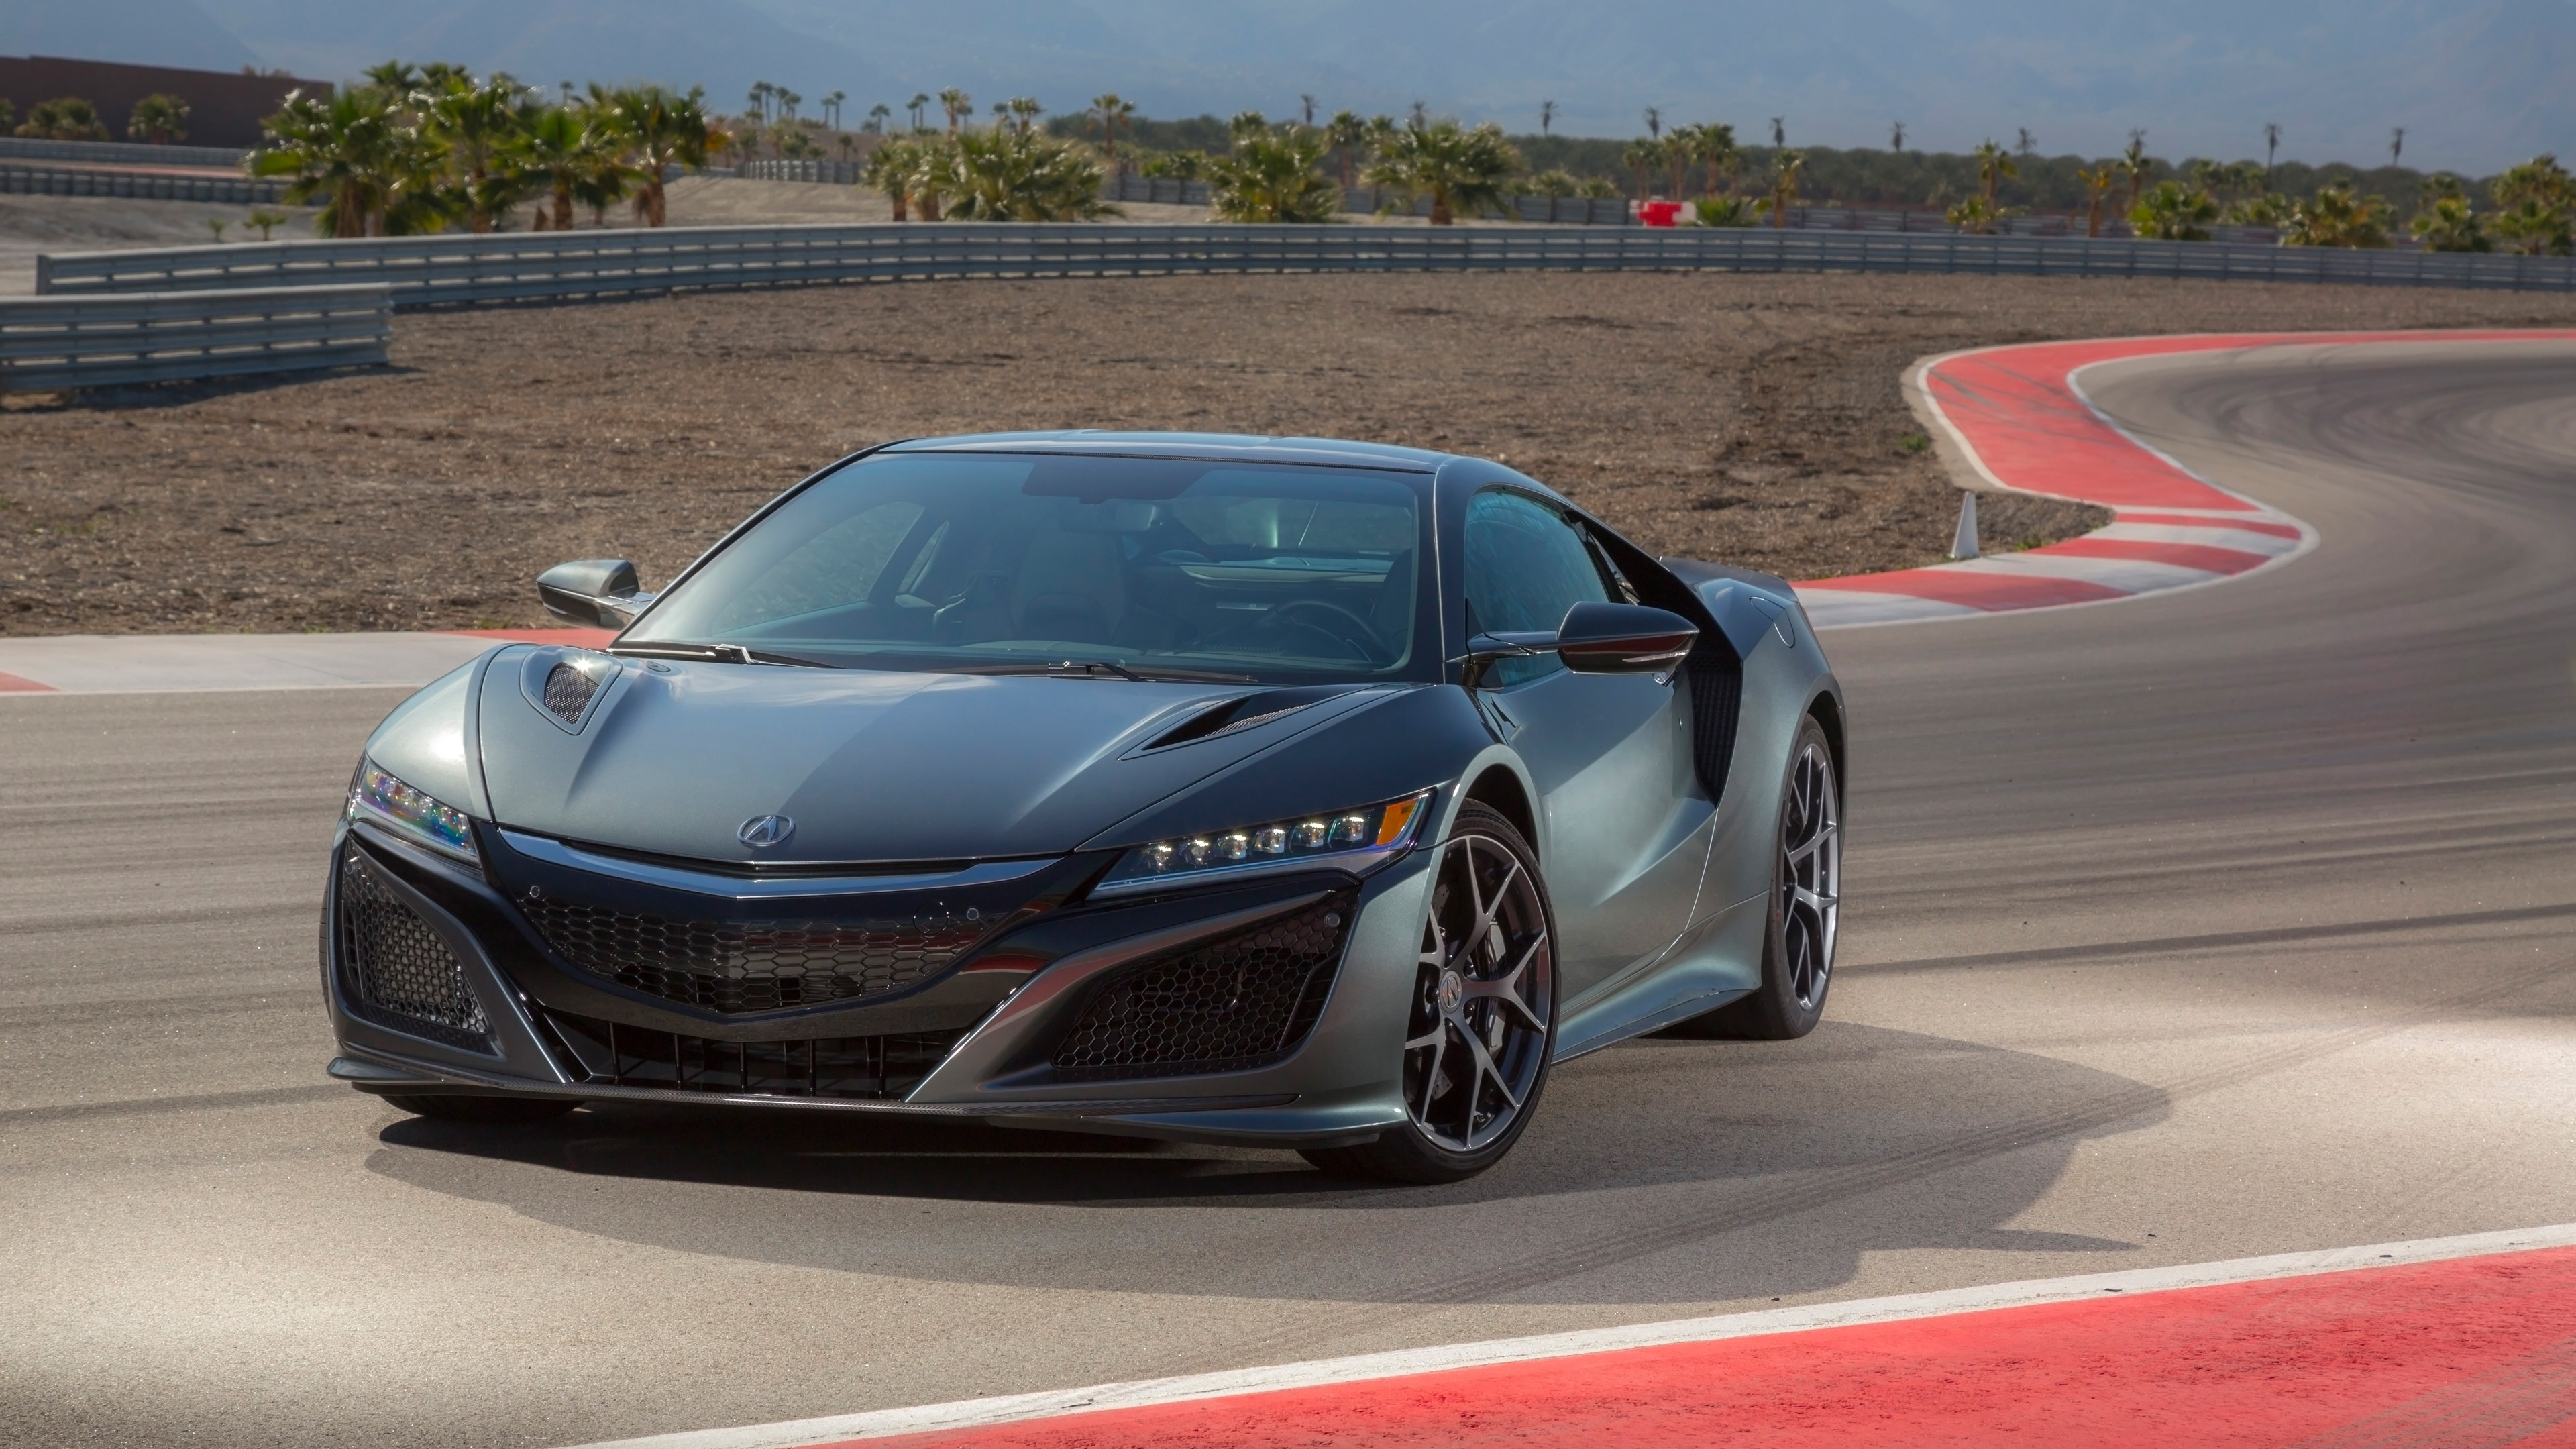 2017 acura nsx nord gray metallic 4k wallpaper